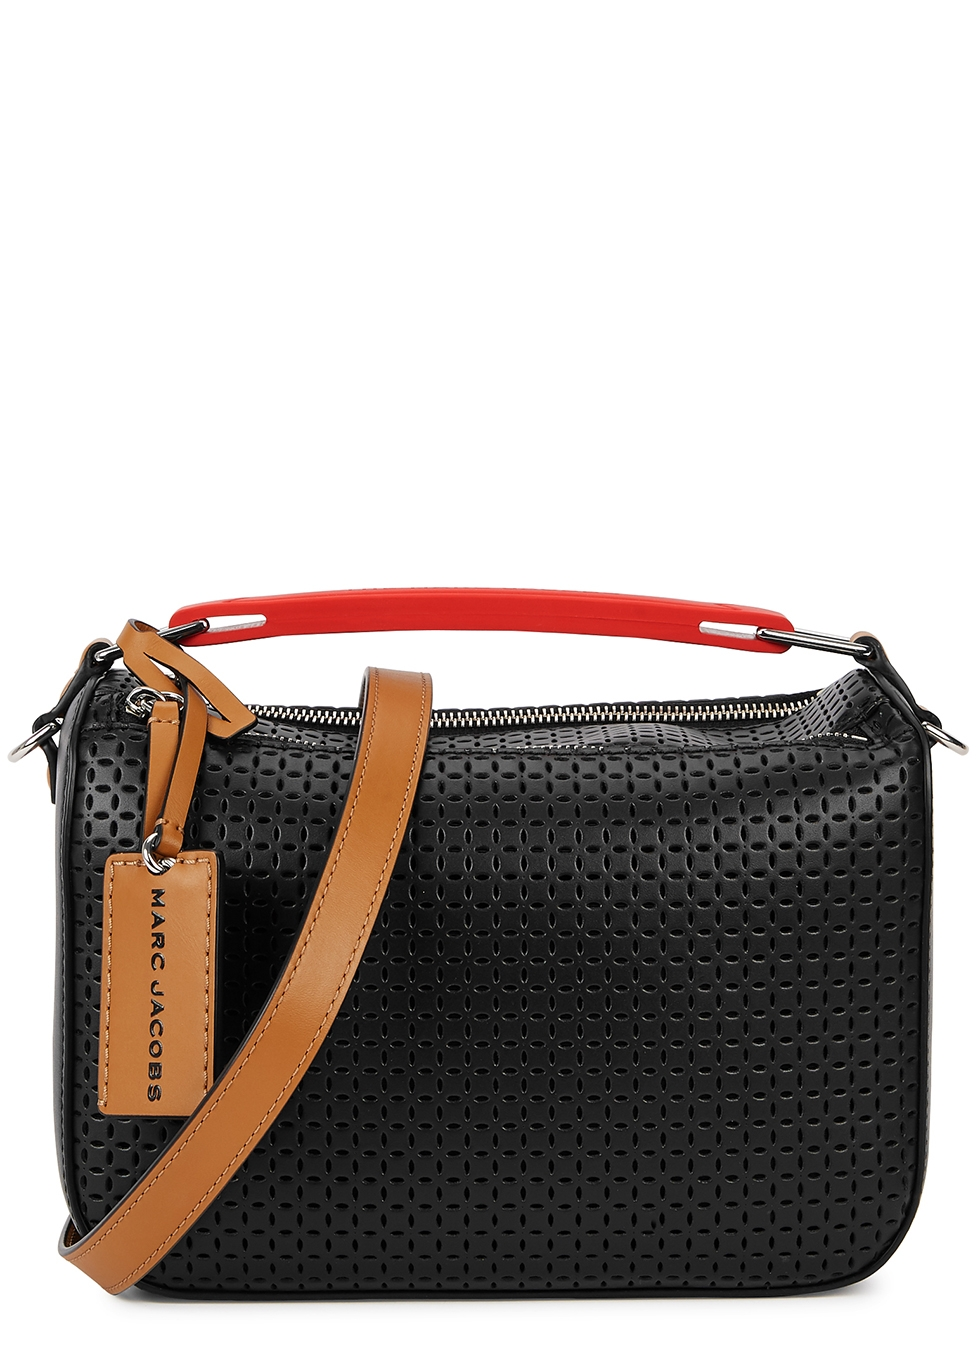 The Soft Box black perforated leather cross-body bag